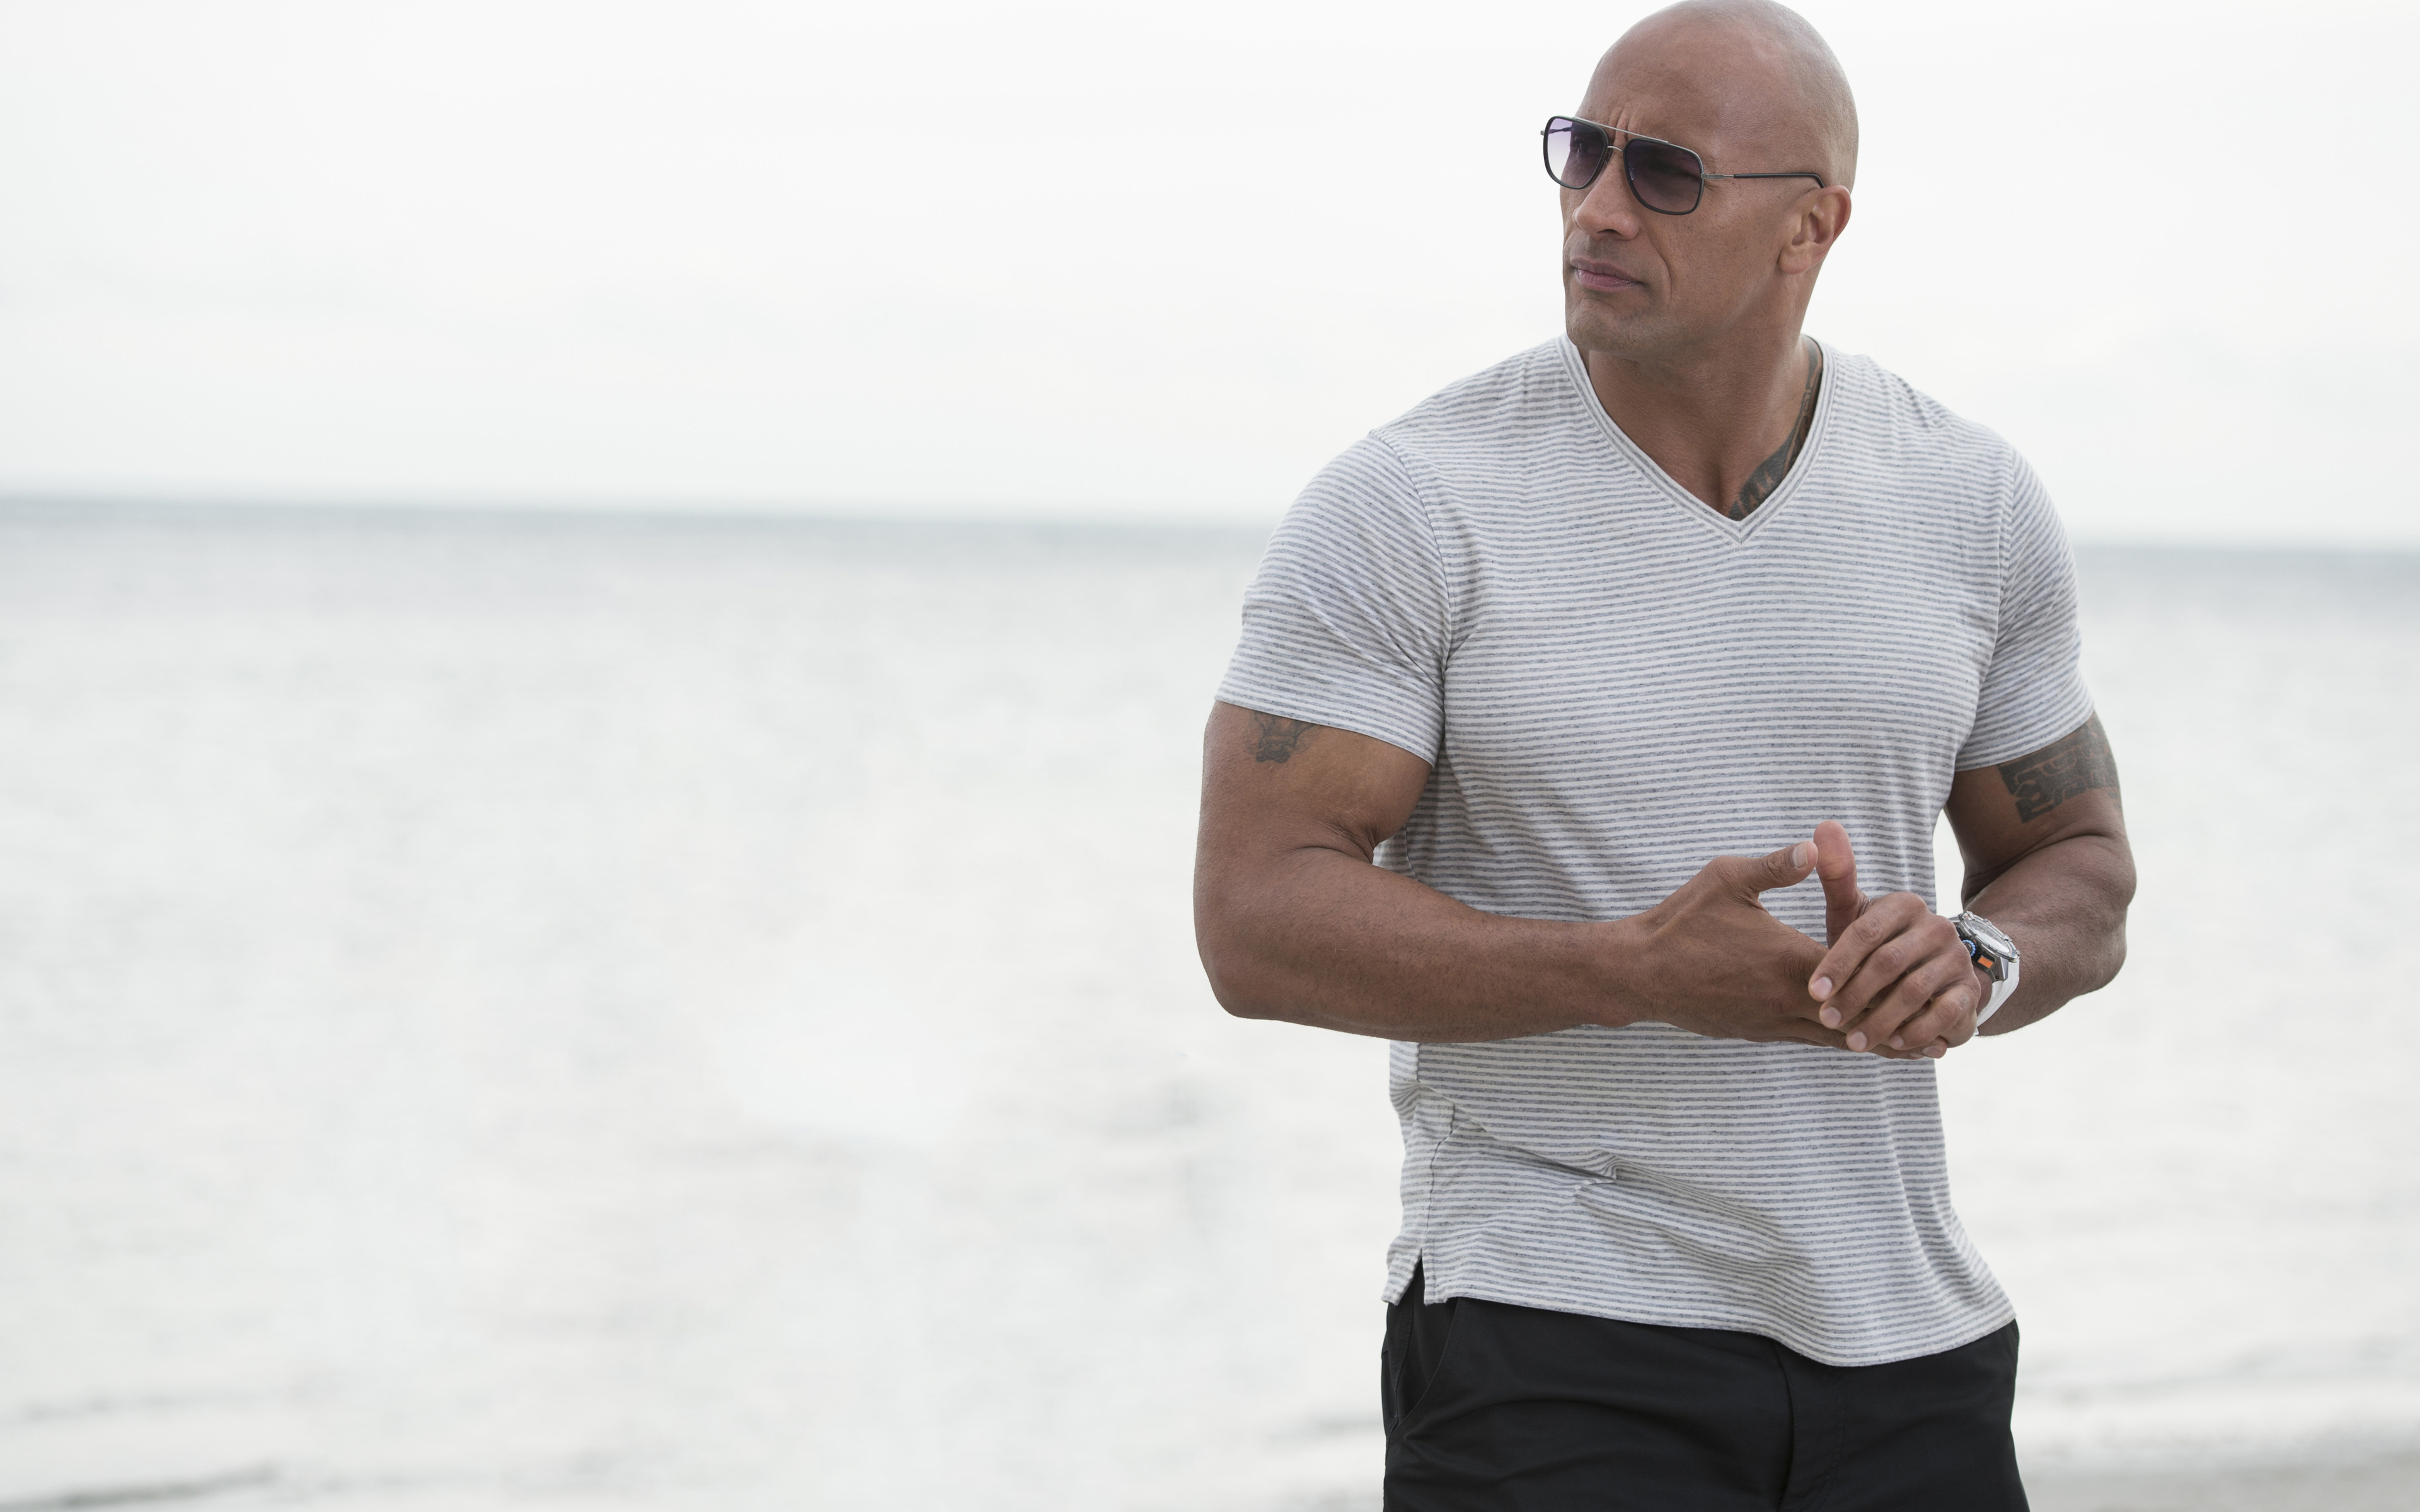 dwayne-johnson-2017-1a.jpg